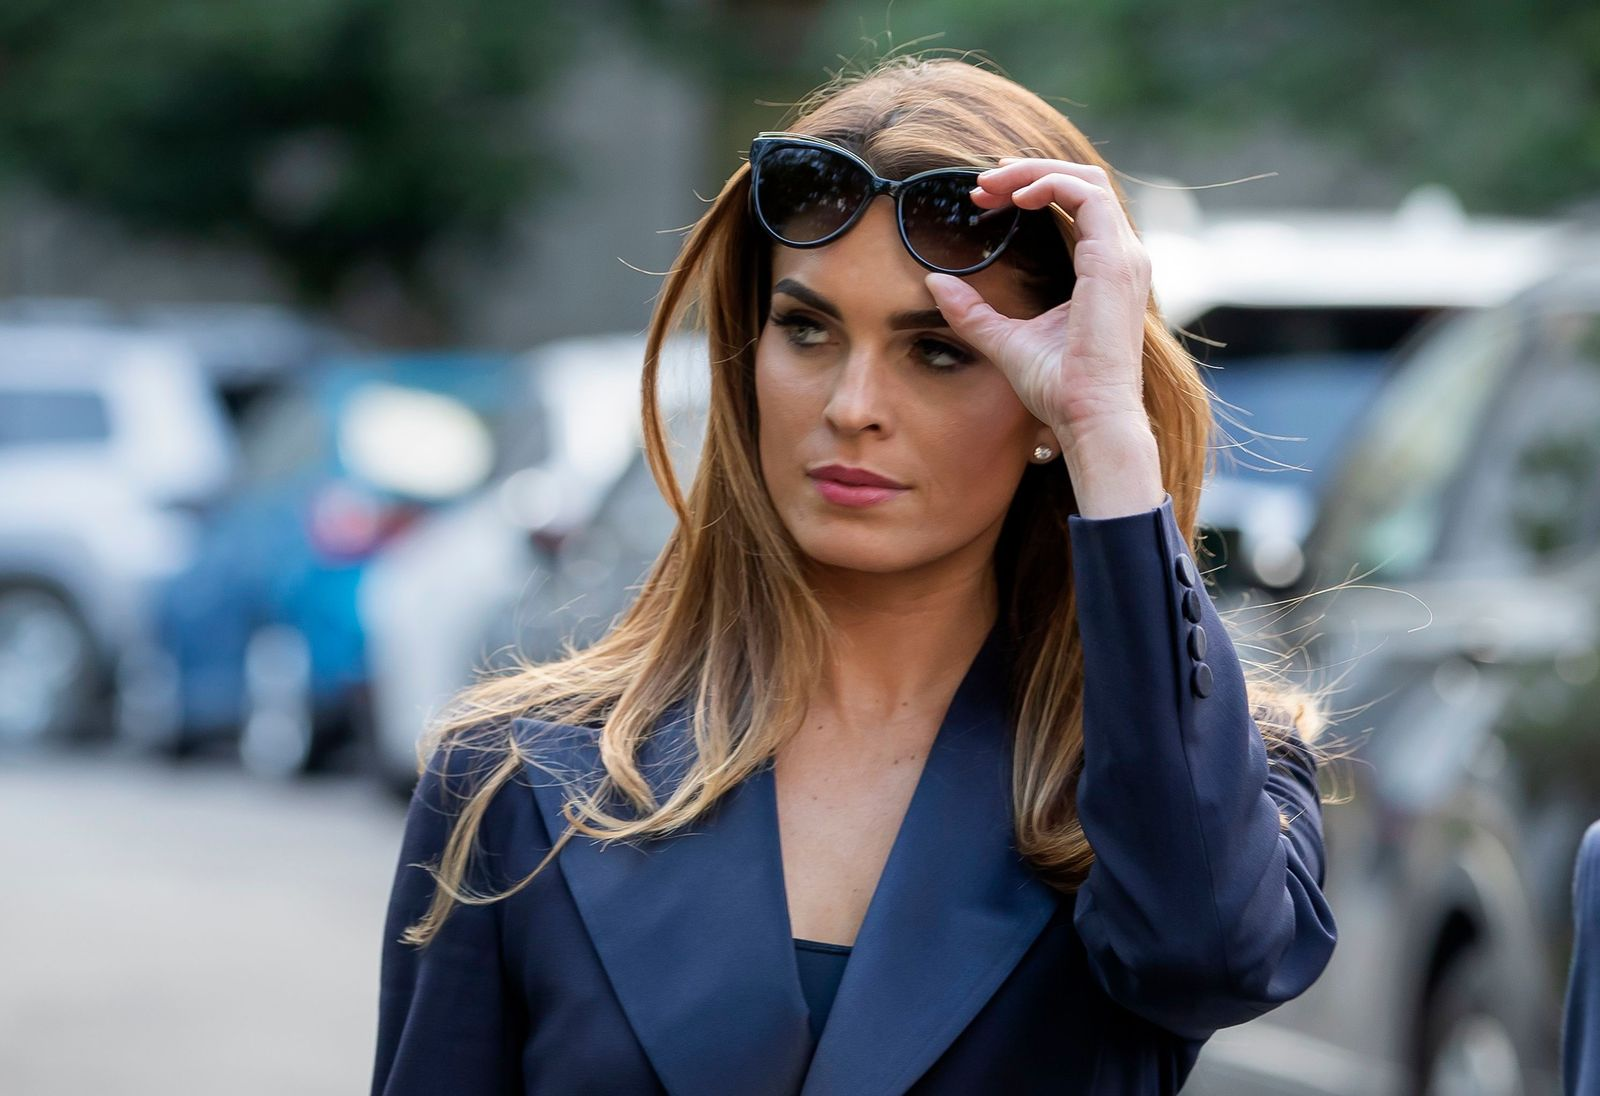 US President Donald J. Trump's former White House communications director and campaign spokeswoman Hope Hicks testifies before the House Judiciary Committee, Washington, USA - 19 Jun 2019